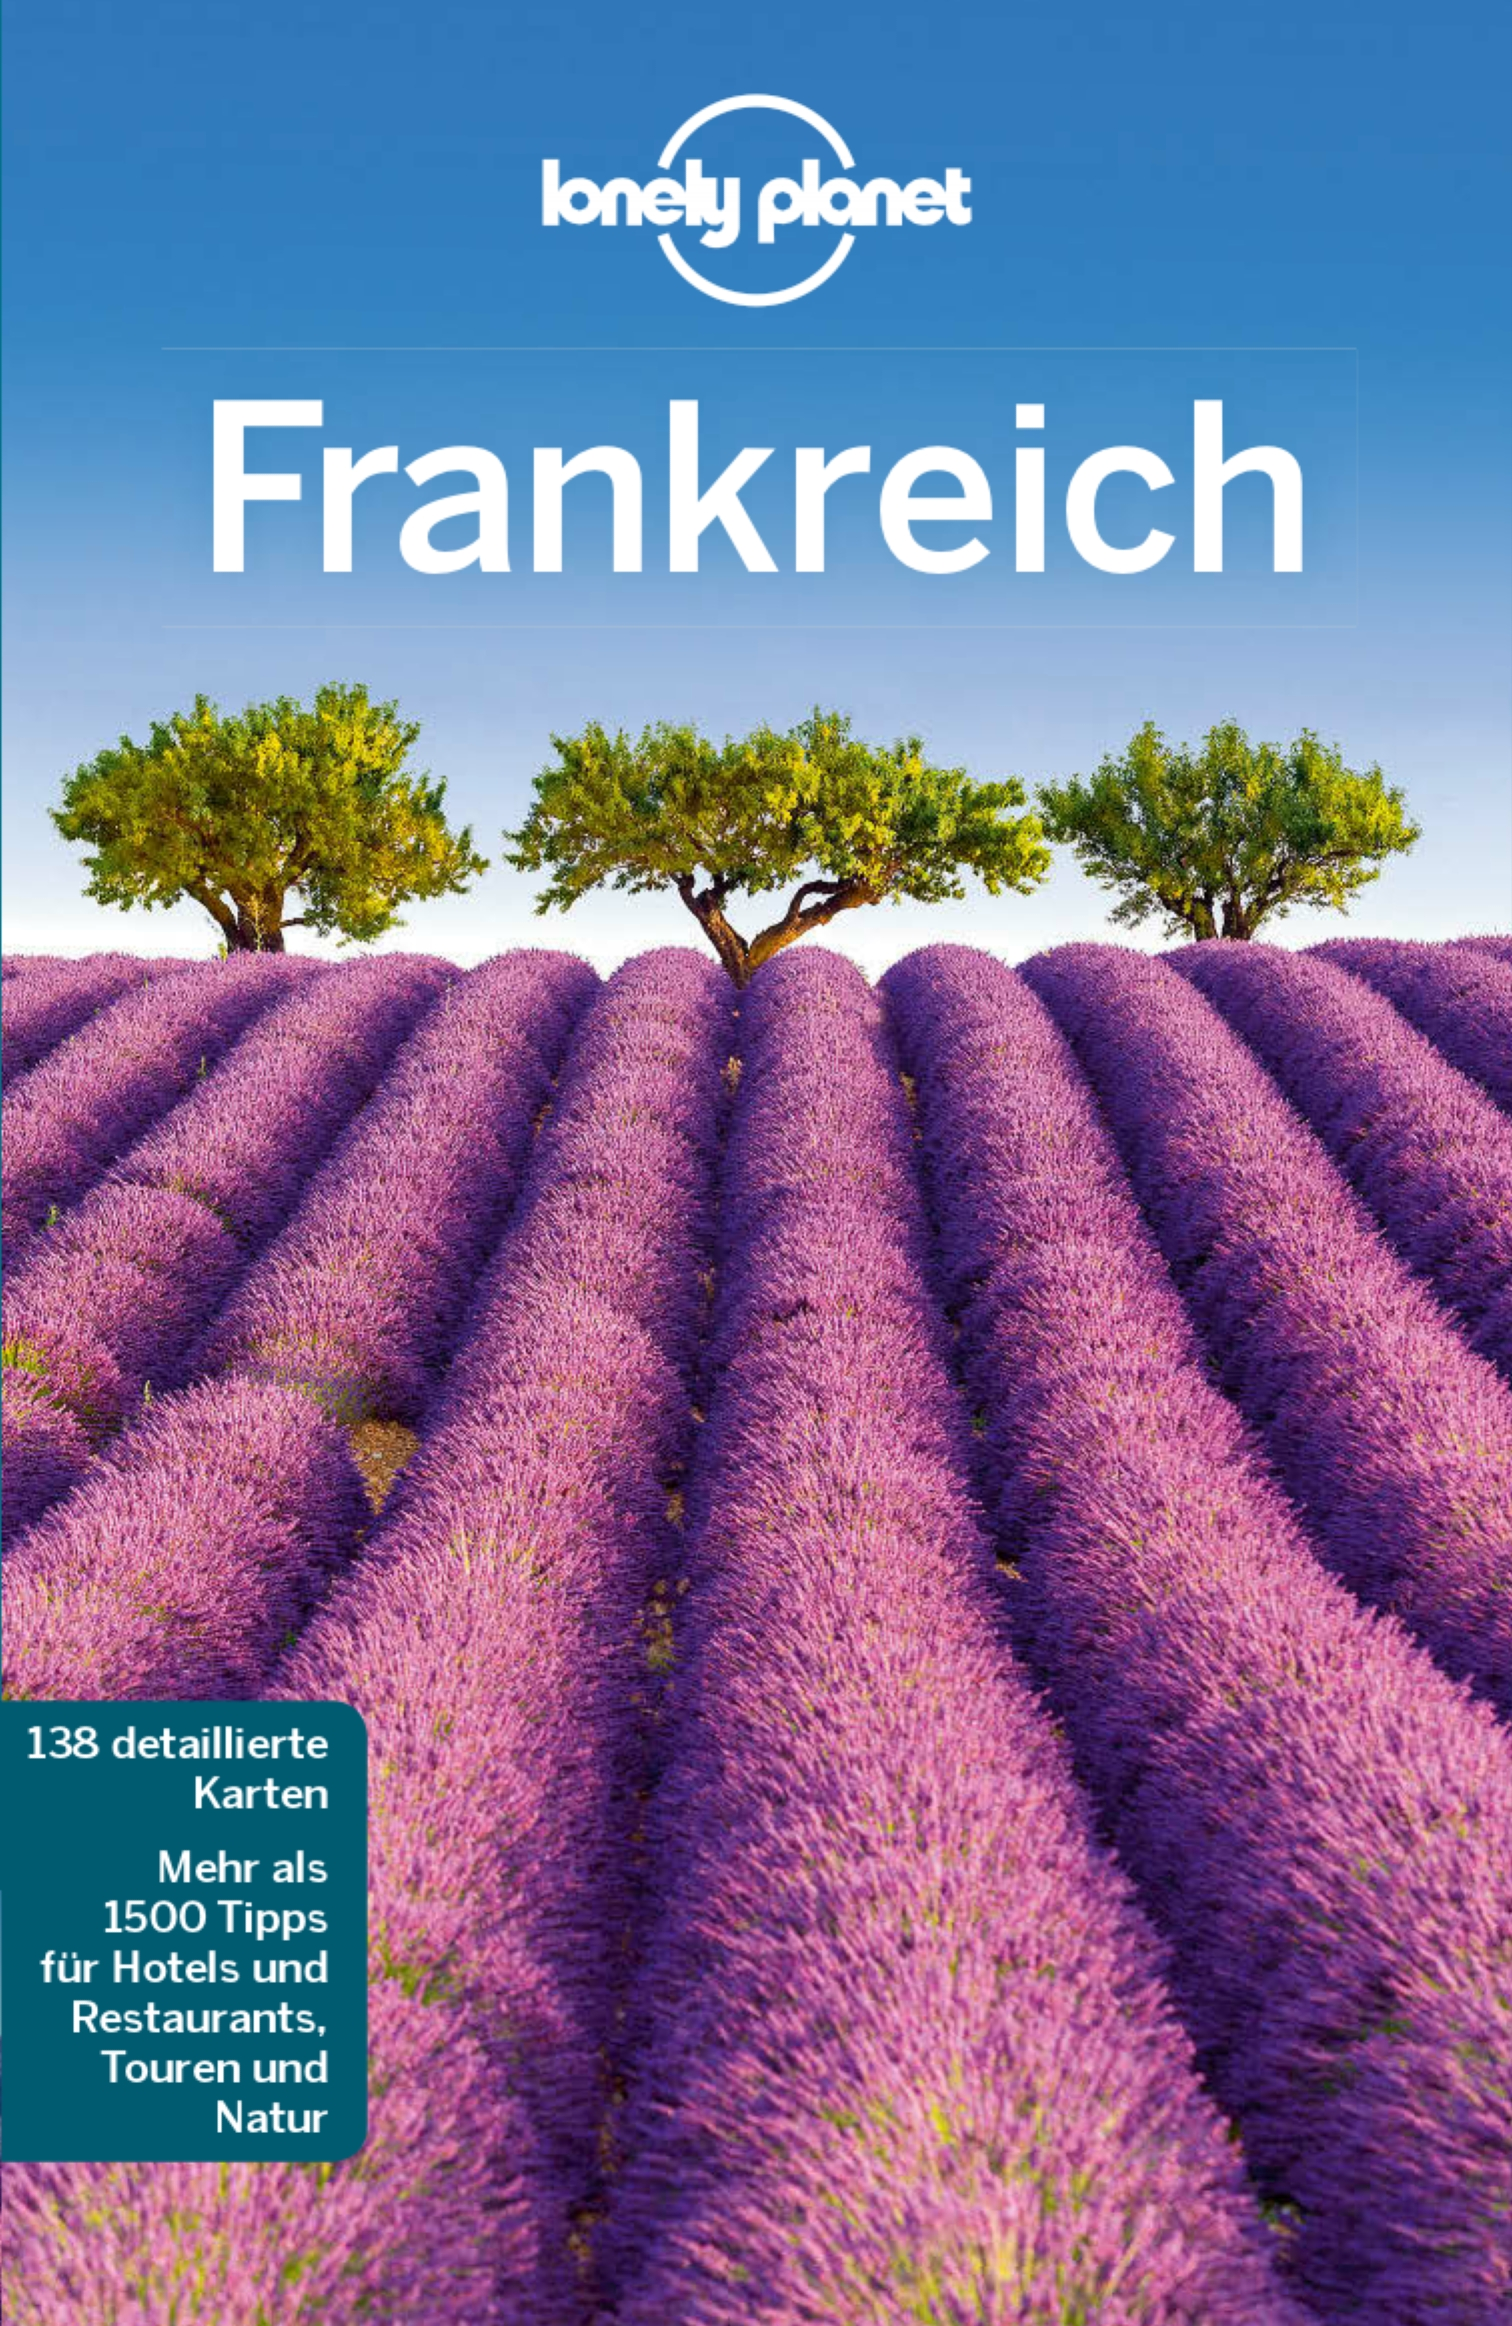 Lonely Planet - Frankreich (Cover)